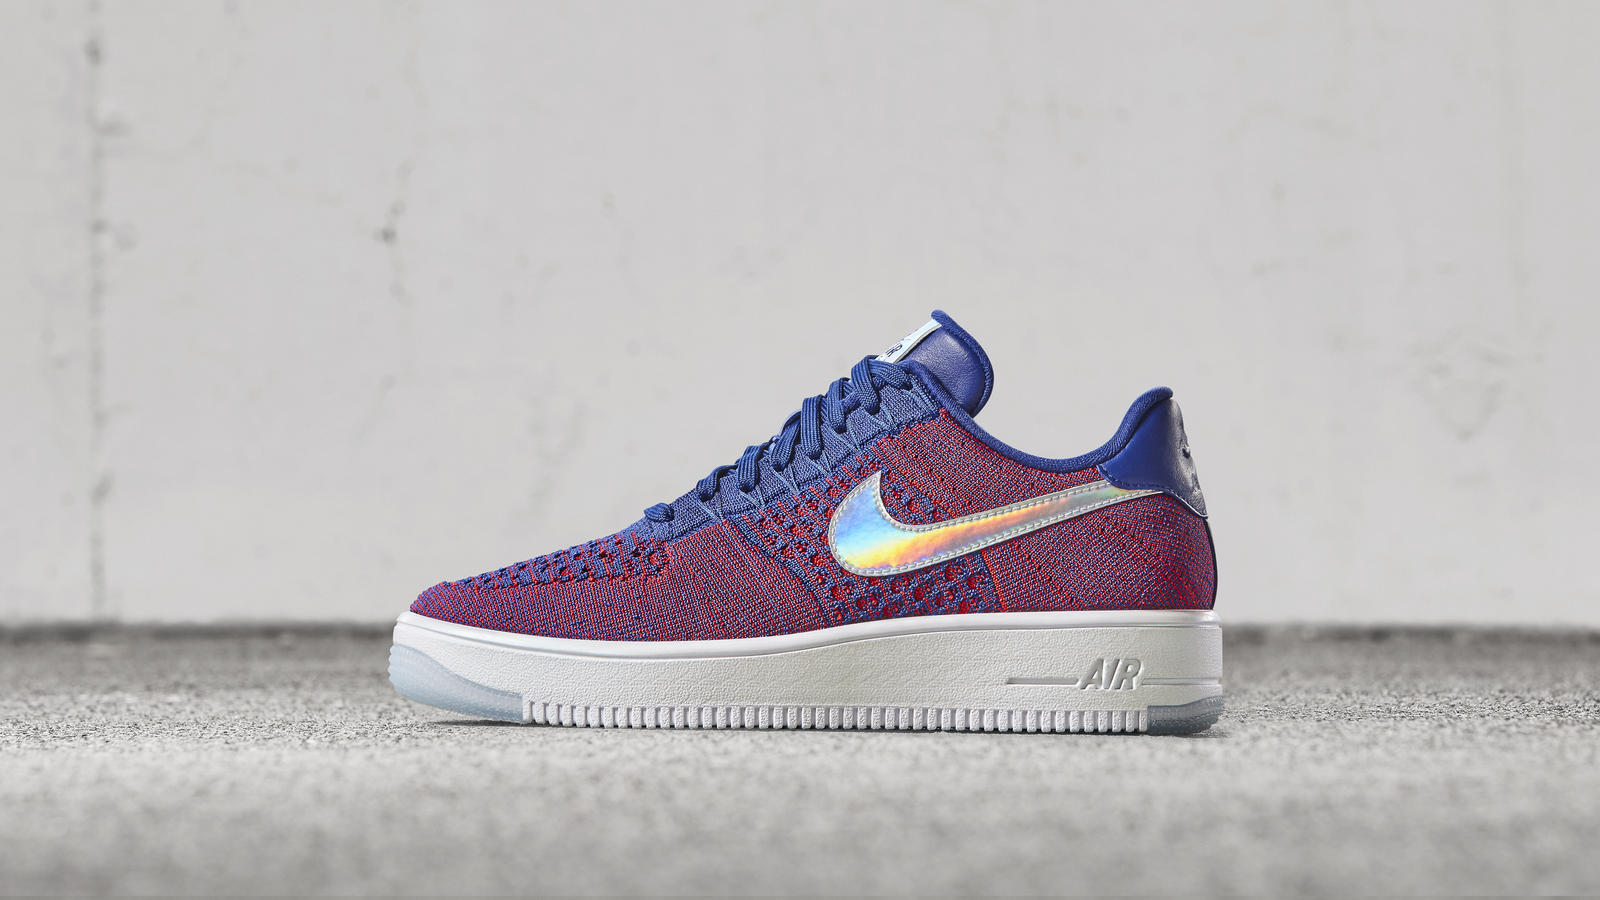 Nike Air Force 1 Low Flyknit Review